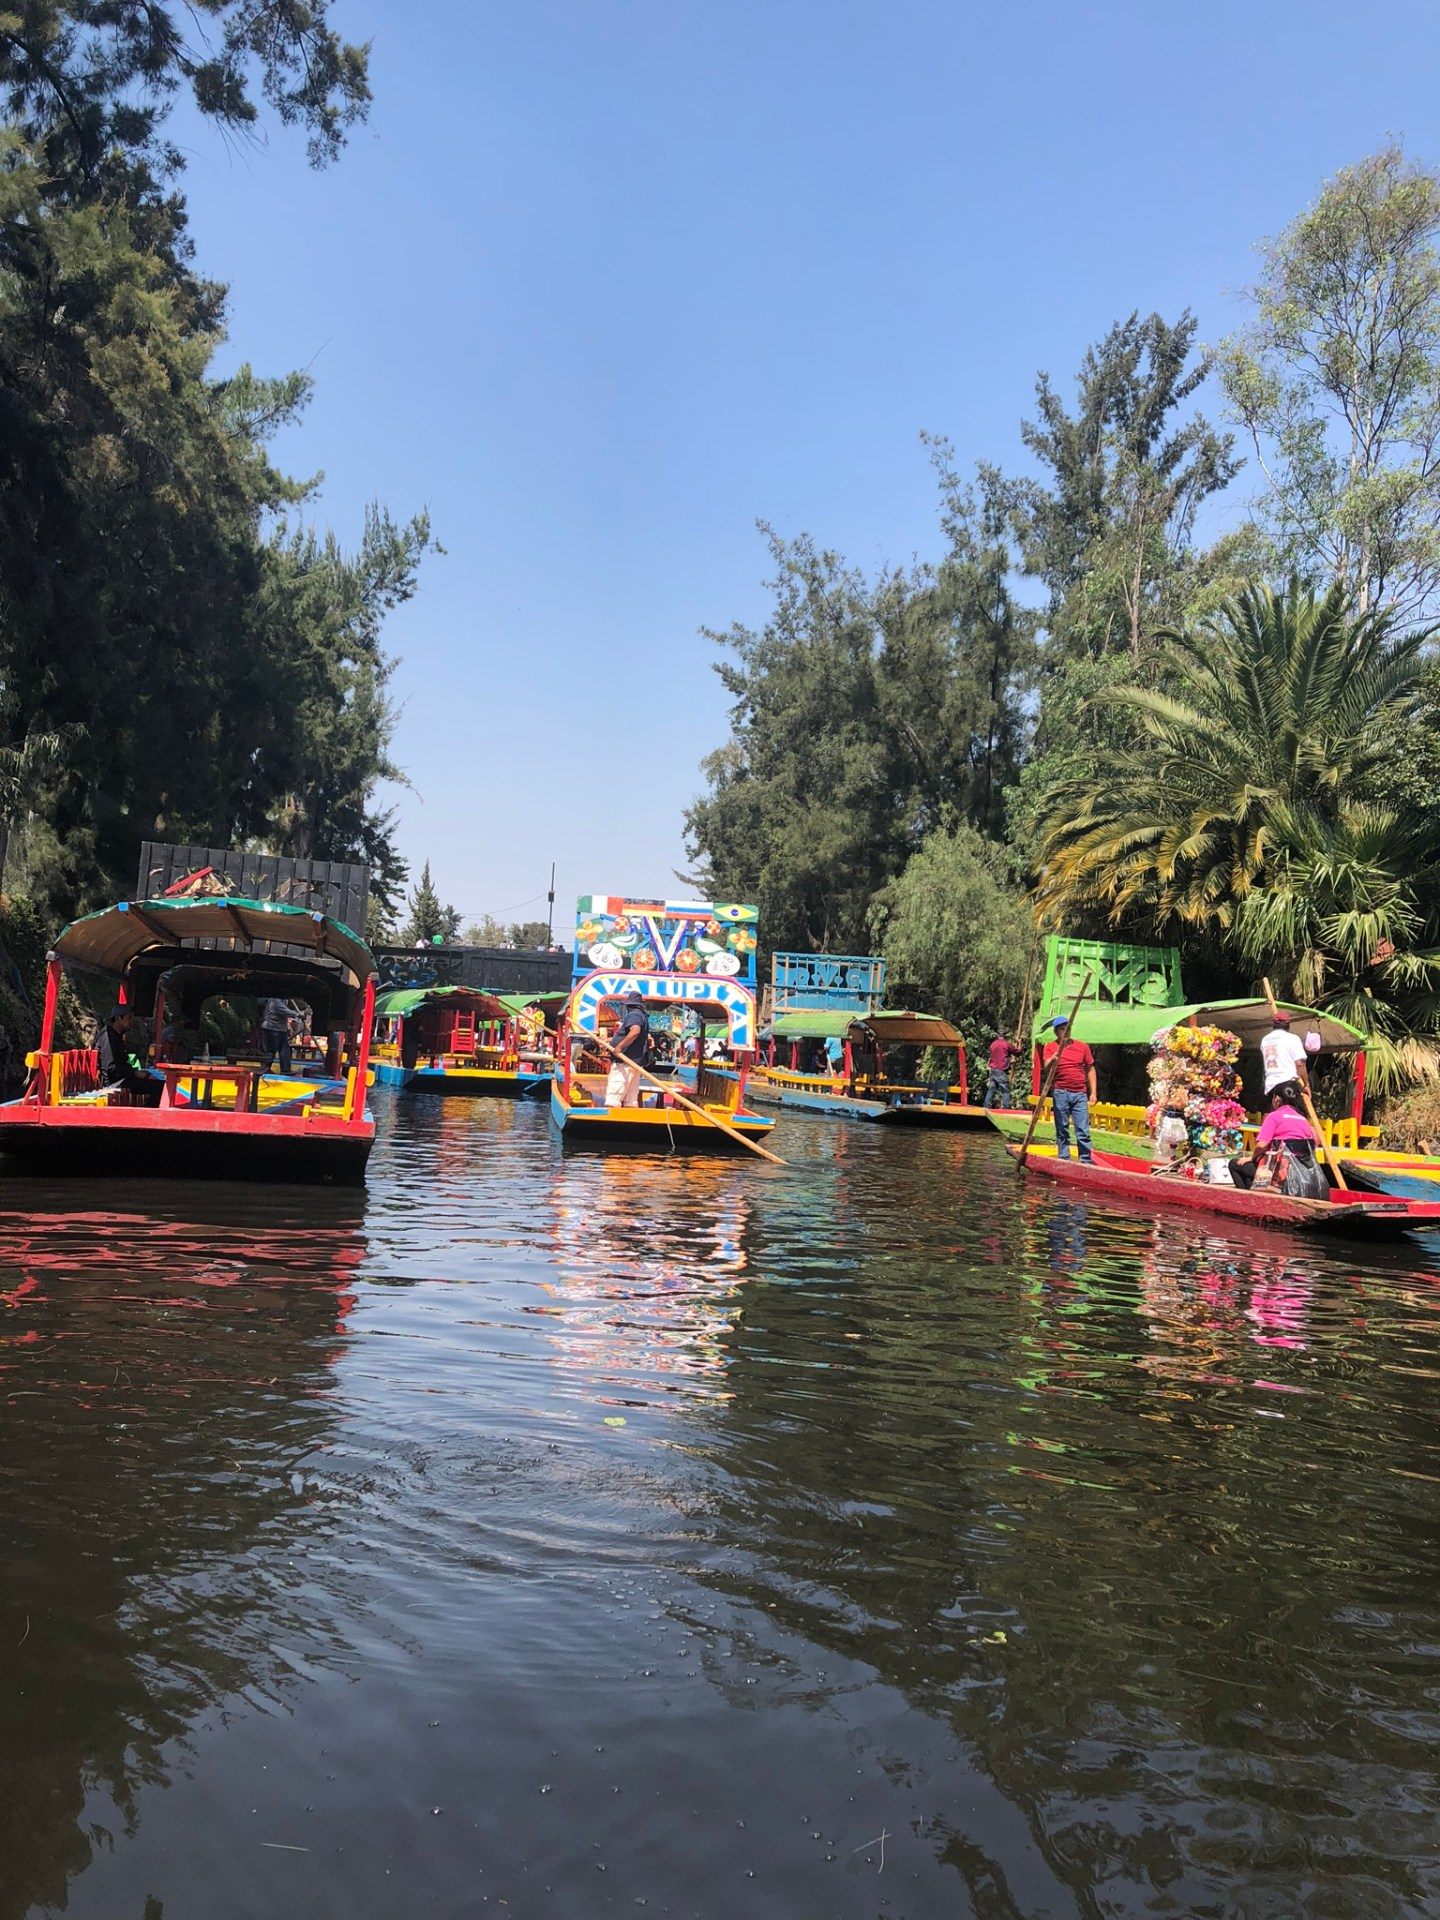 Trajineras in the canals of Xochimilco